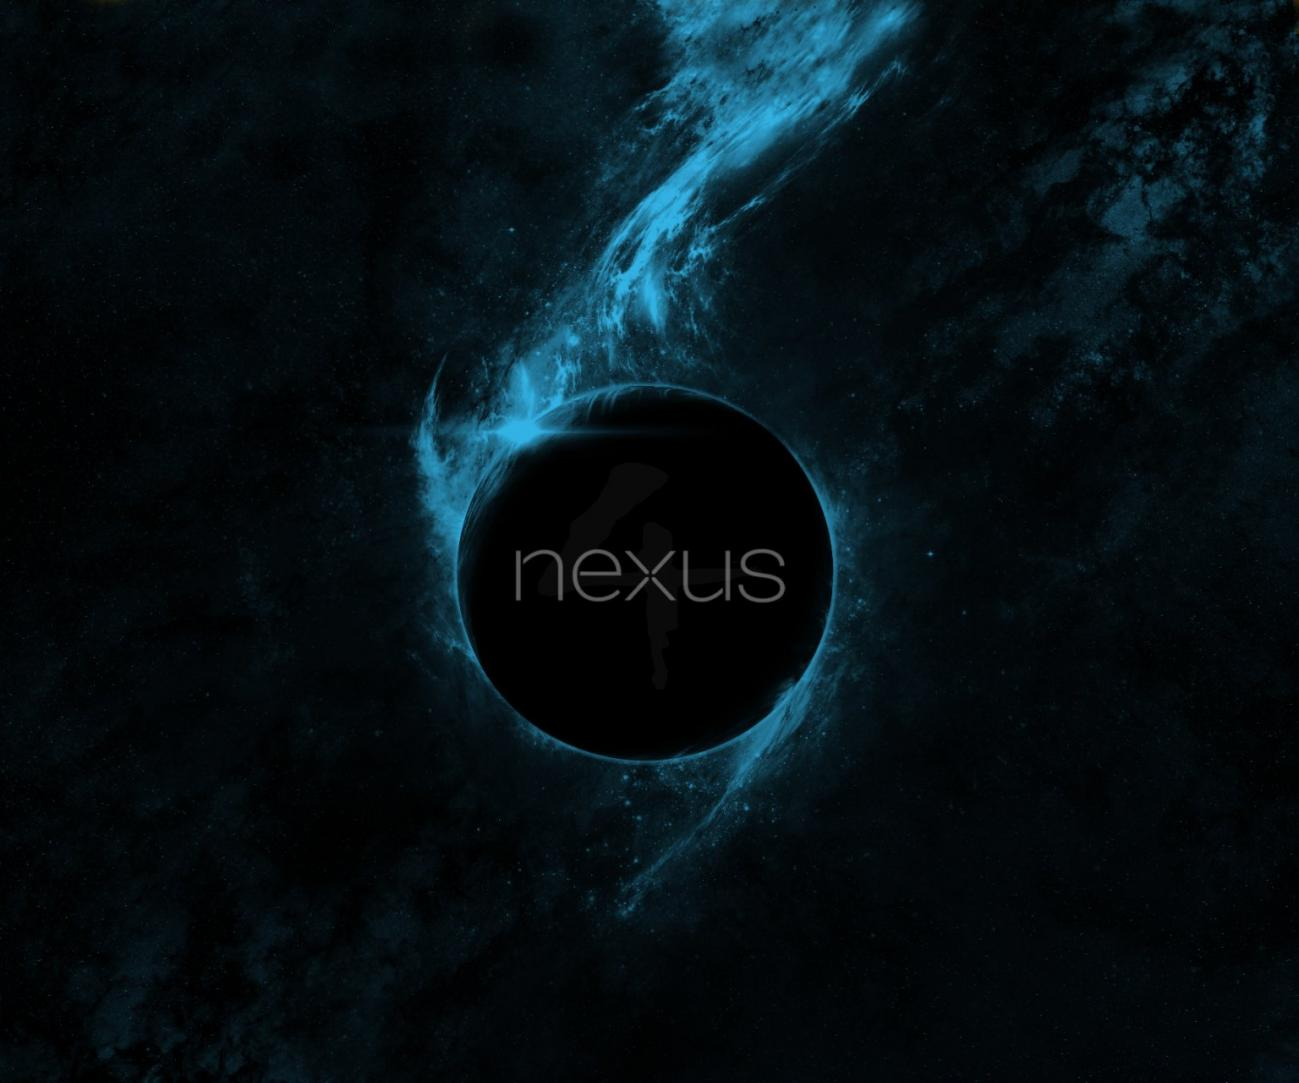 Desktop Wallpapers 1080p: Nexus 4 Wallpapers